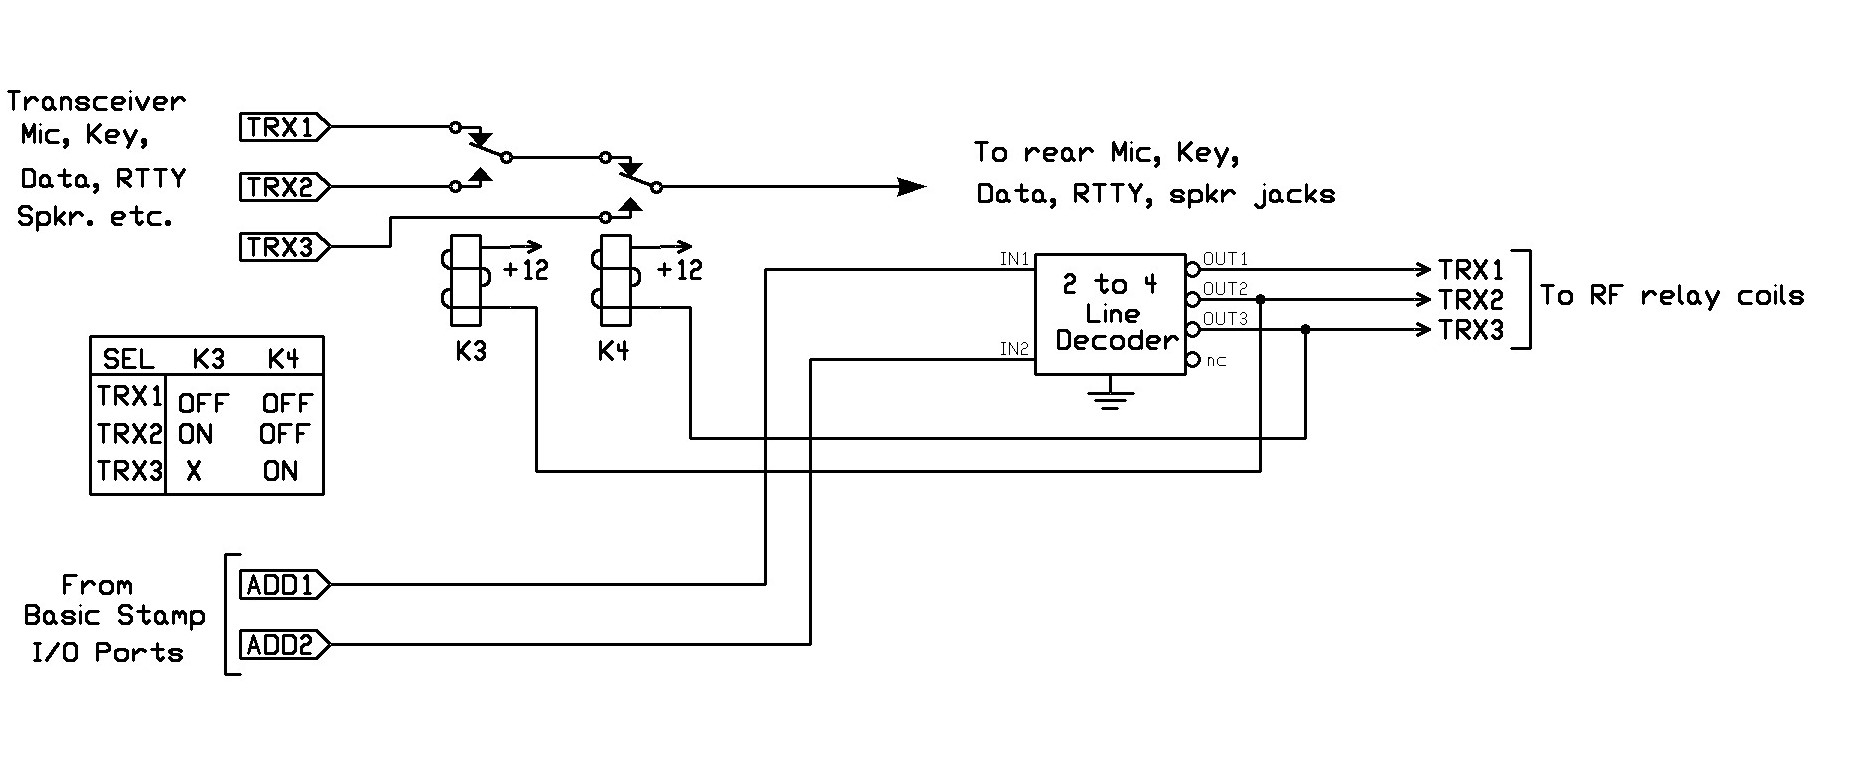 W8zr Multicontroller Technical Description Relay Basic Diagram The Above Figure Illustrates Simplified Switching Of Stationpro Ii Which Allows Independent Selection Three Transceiver Exciters Shown As Trx1